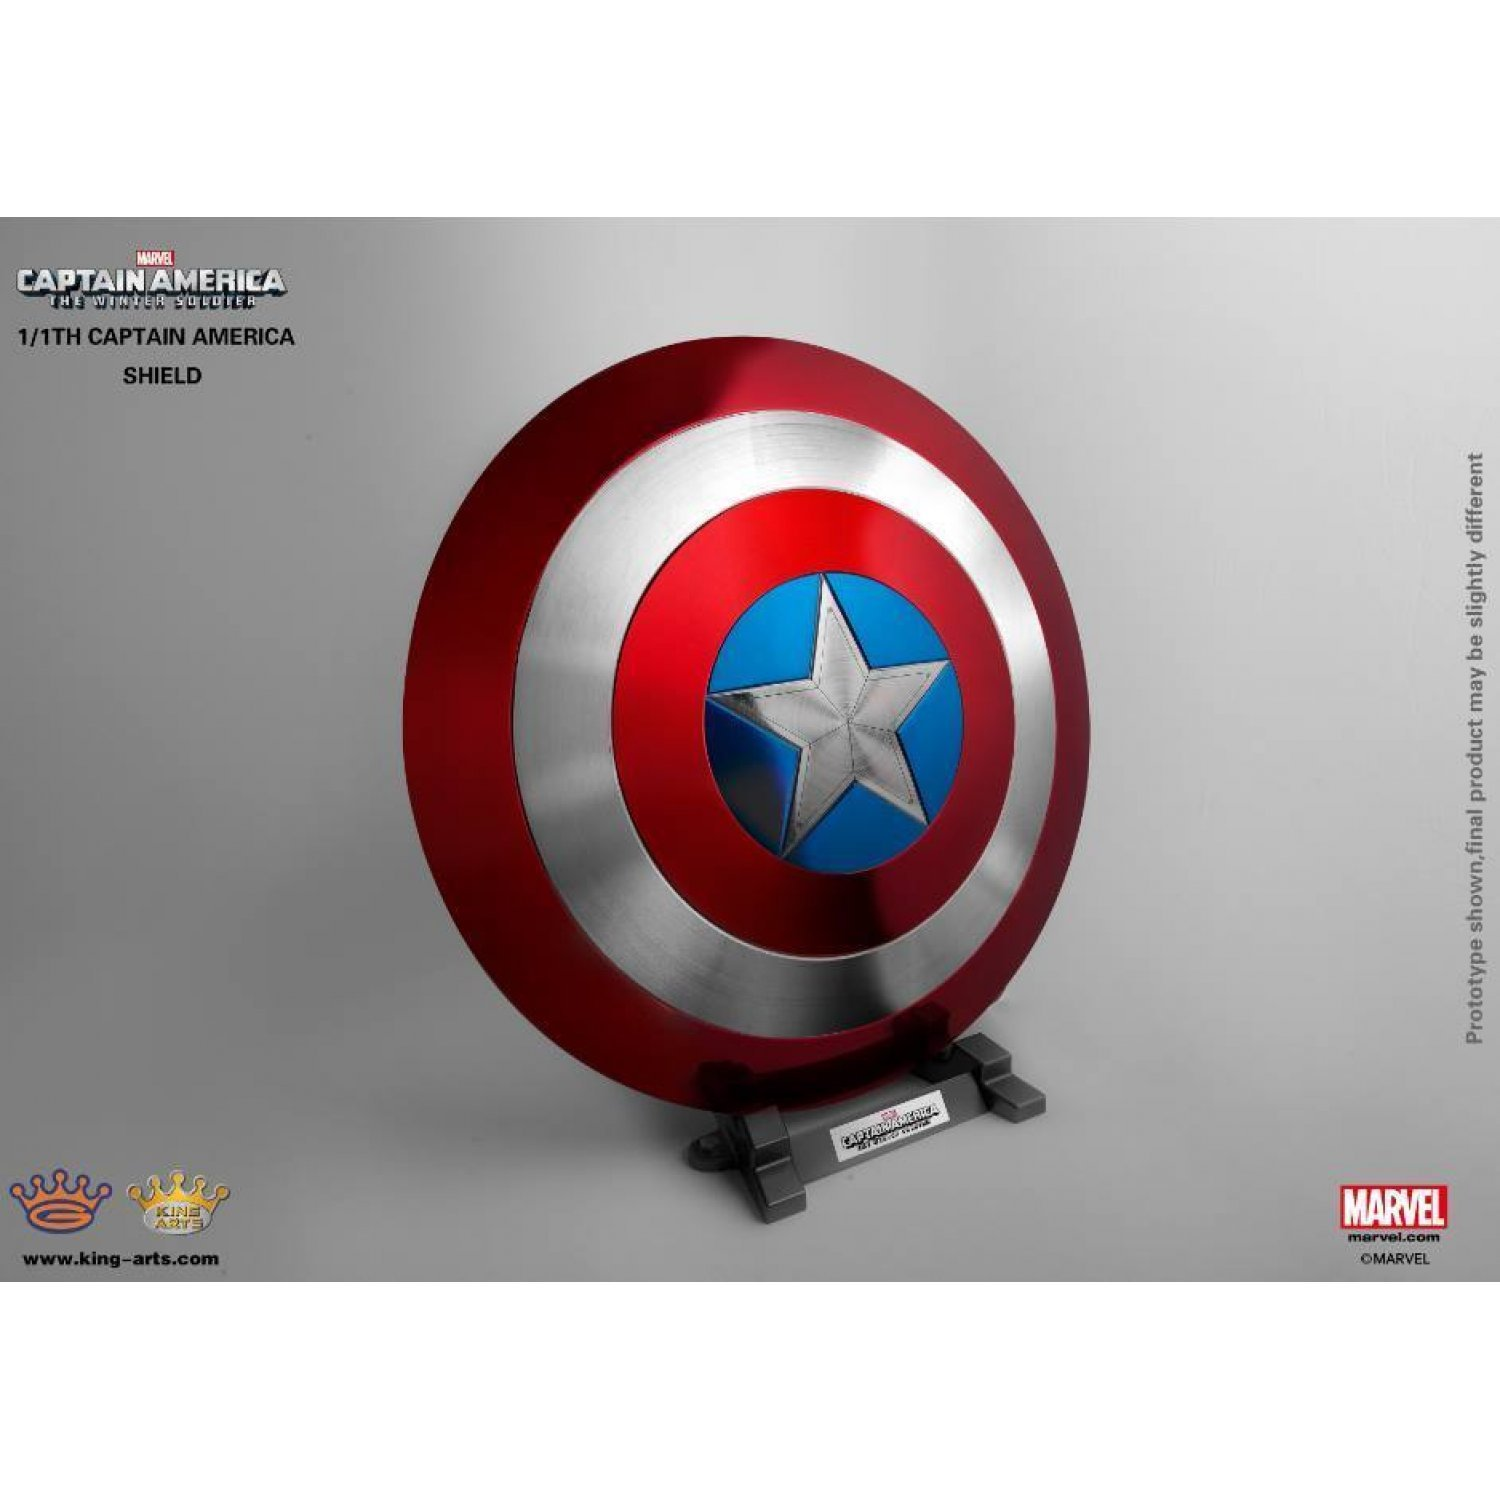 King Arts 11 Movie Props Series Captain America The Winter Soldier